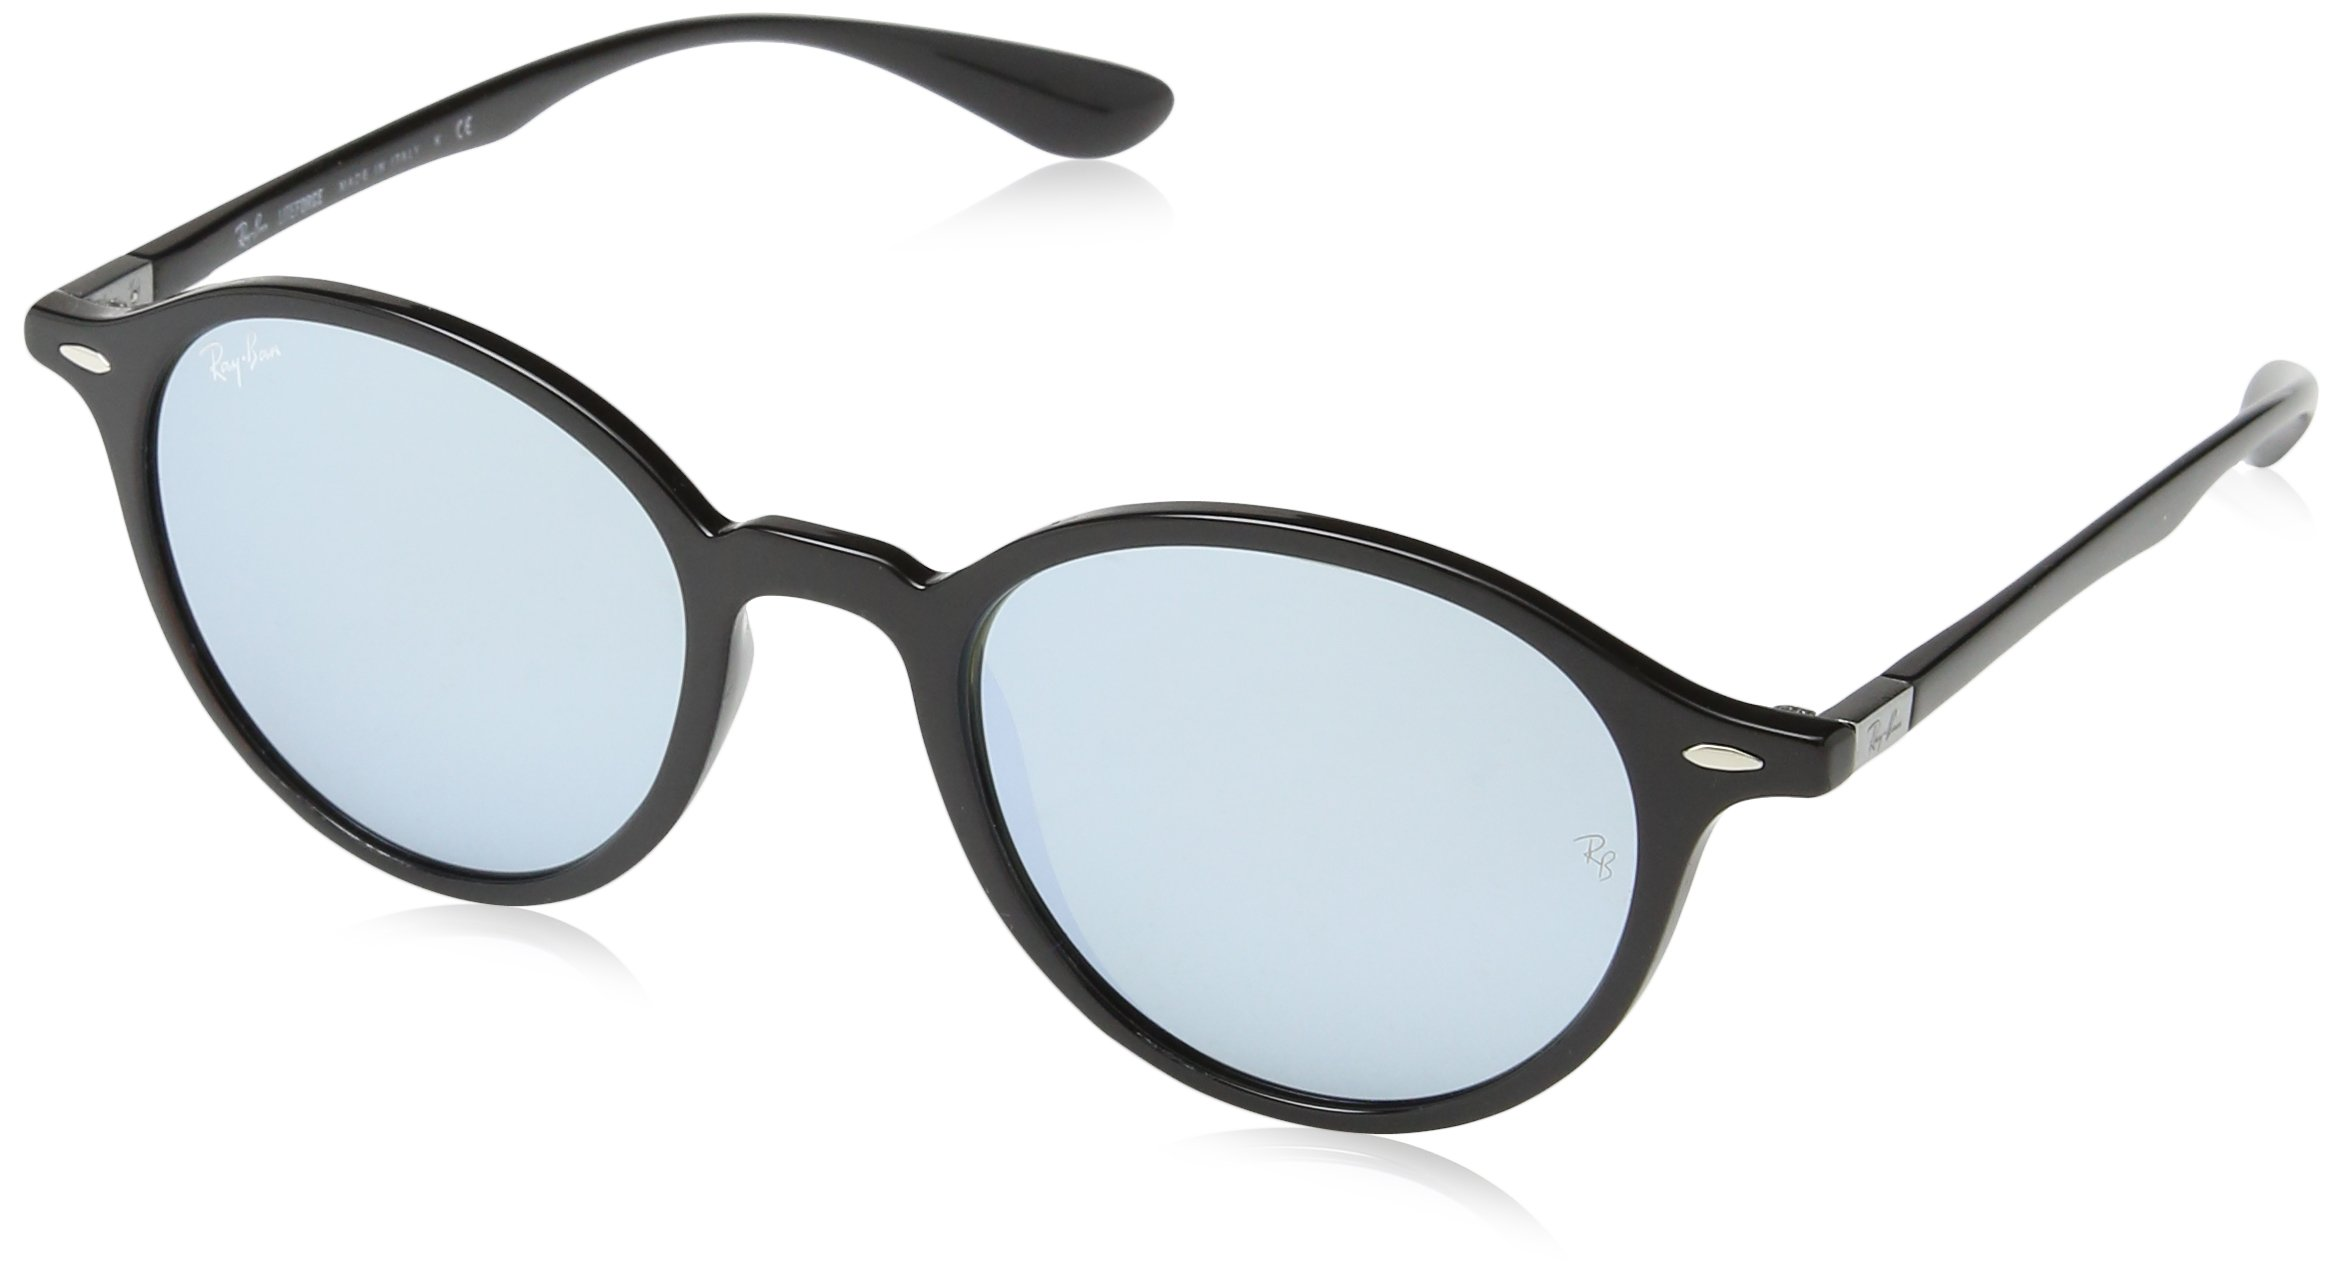 Ray-Ban Injected Unisex Sunglasses - Black Frame Silver Flash Lenses 50mm Non-Polarized